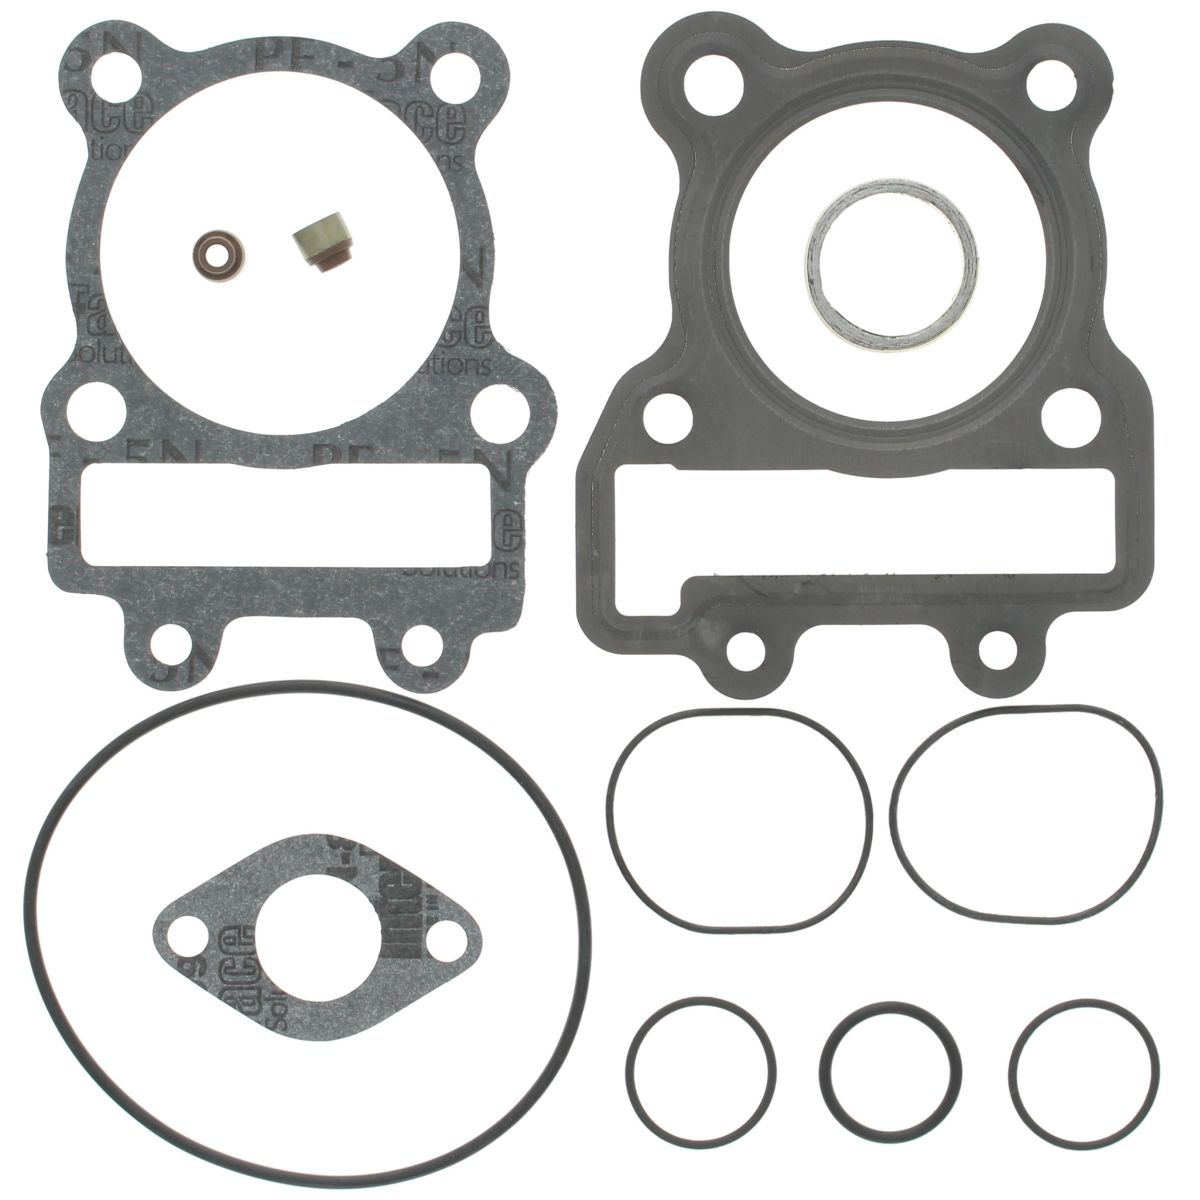 Top End Gasket Kit Motorcycles Kawasaki 110 Klx Eshop Wiring Harness For 2002 2016